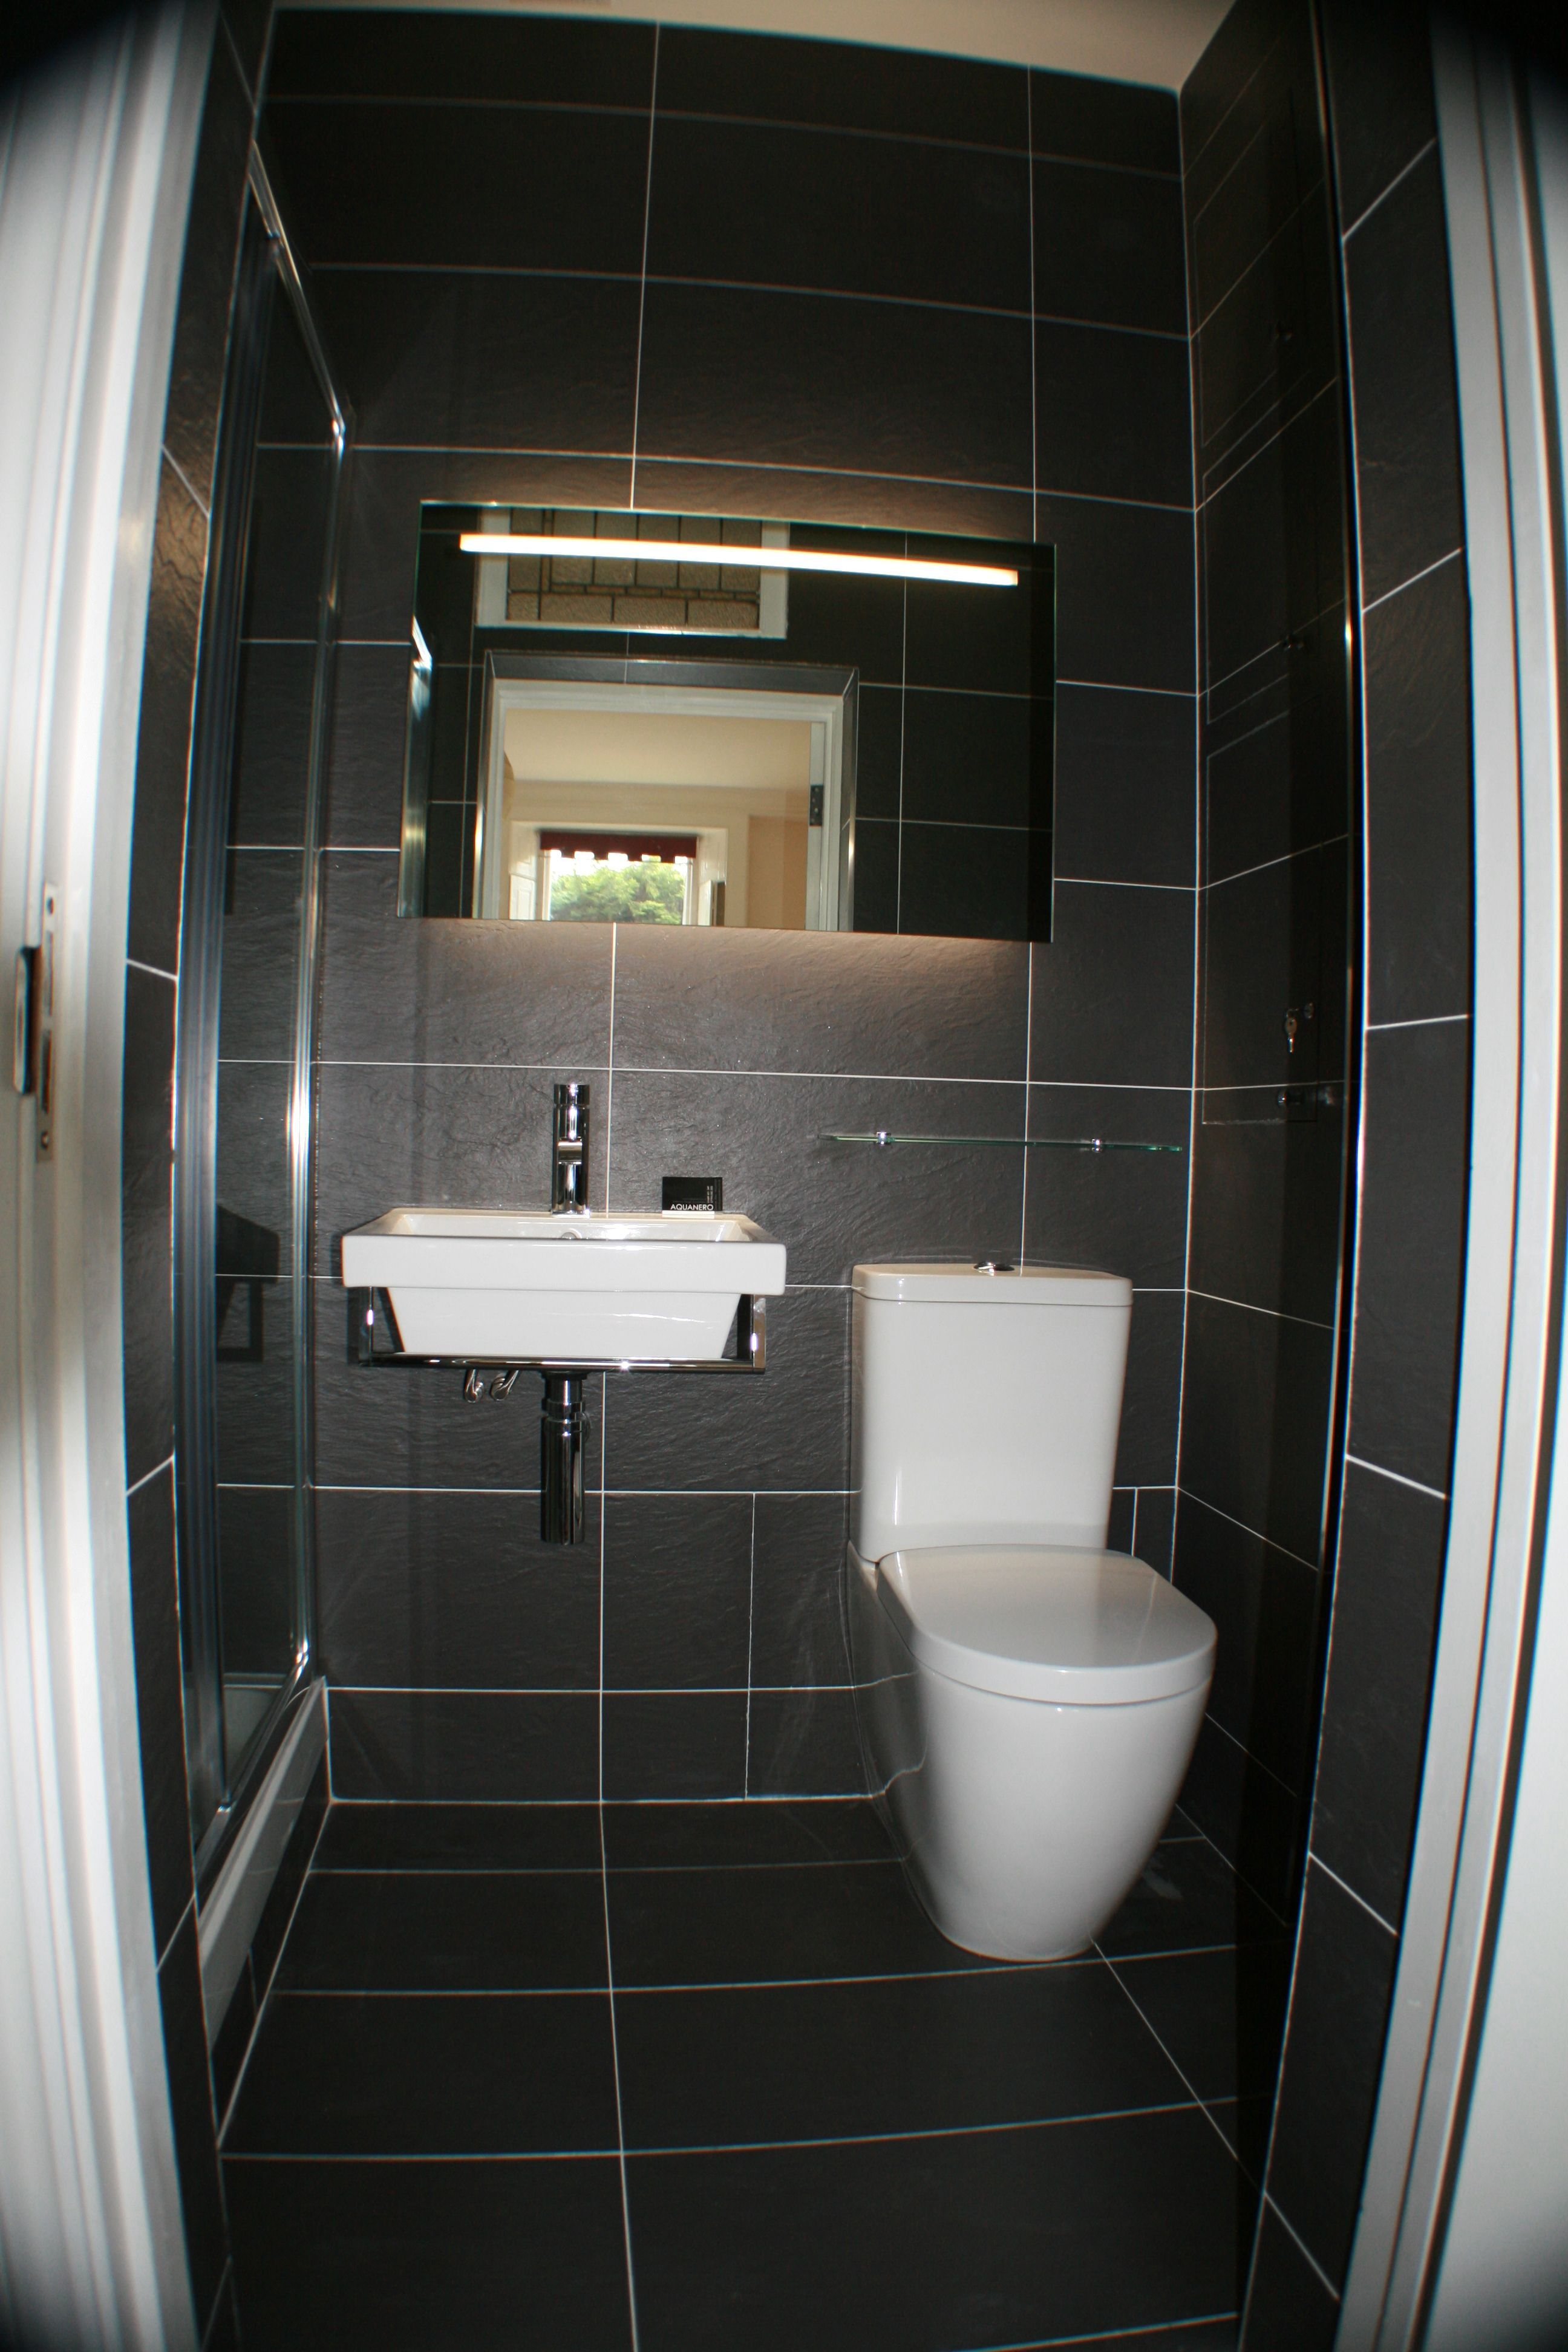 L Shaped Layout Stunning Ensuite Shower Room Designed And L Shaped Layout Stunning Ensuite Shower Room L Shaped Bathroom Bathroom Design Bathroom Layout Plans